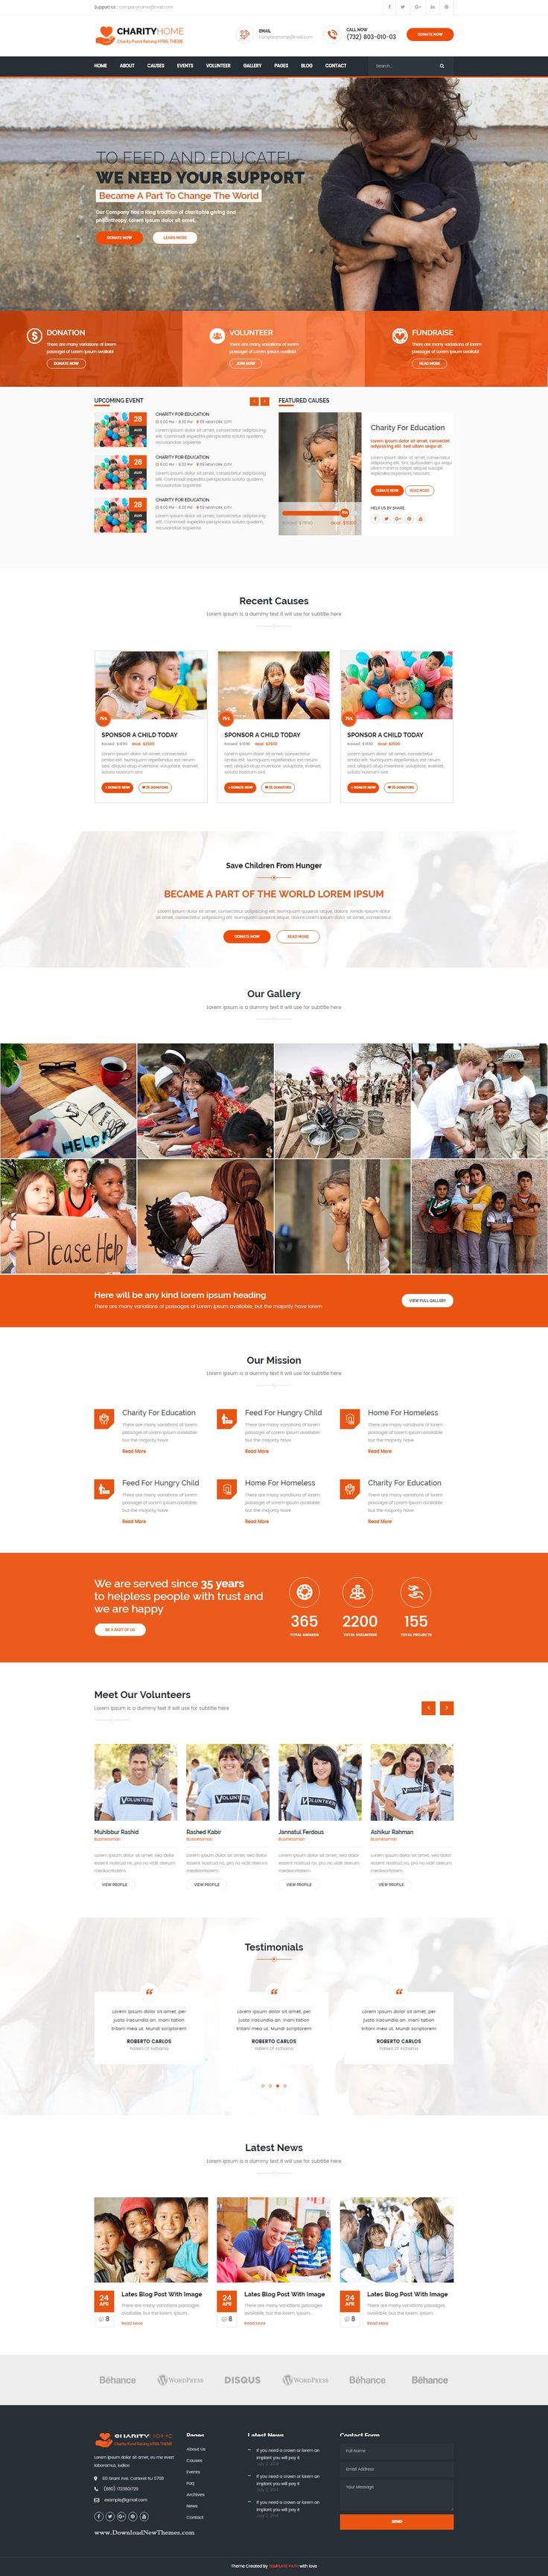 Charity home is a HTML template is created for non-profit websites, like governmental social program #websites, #NGO, Donation and #fundraising websites, etc.